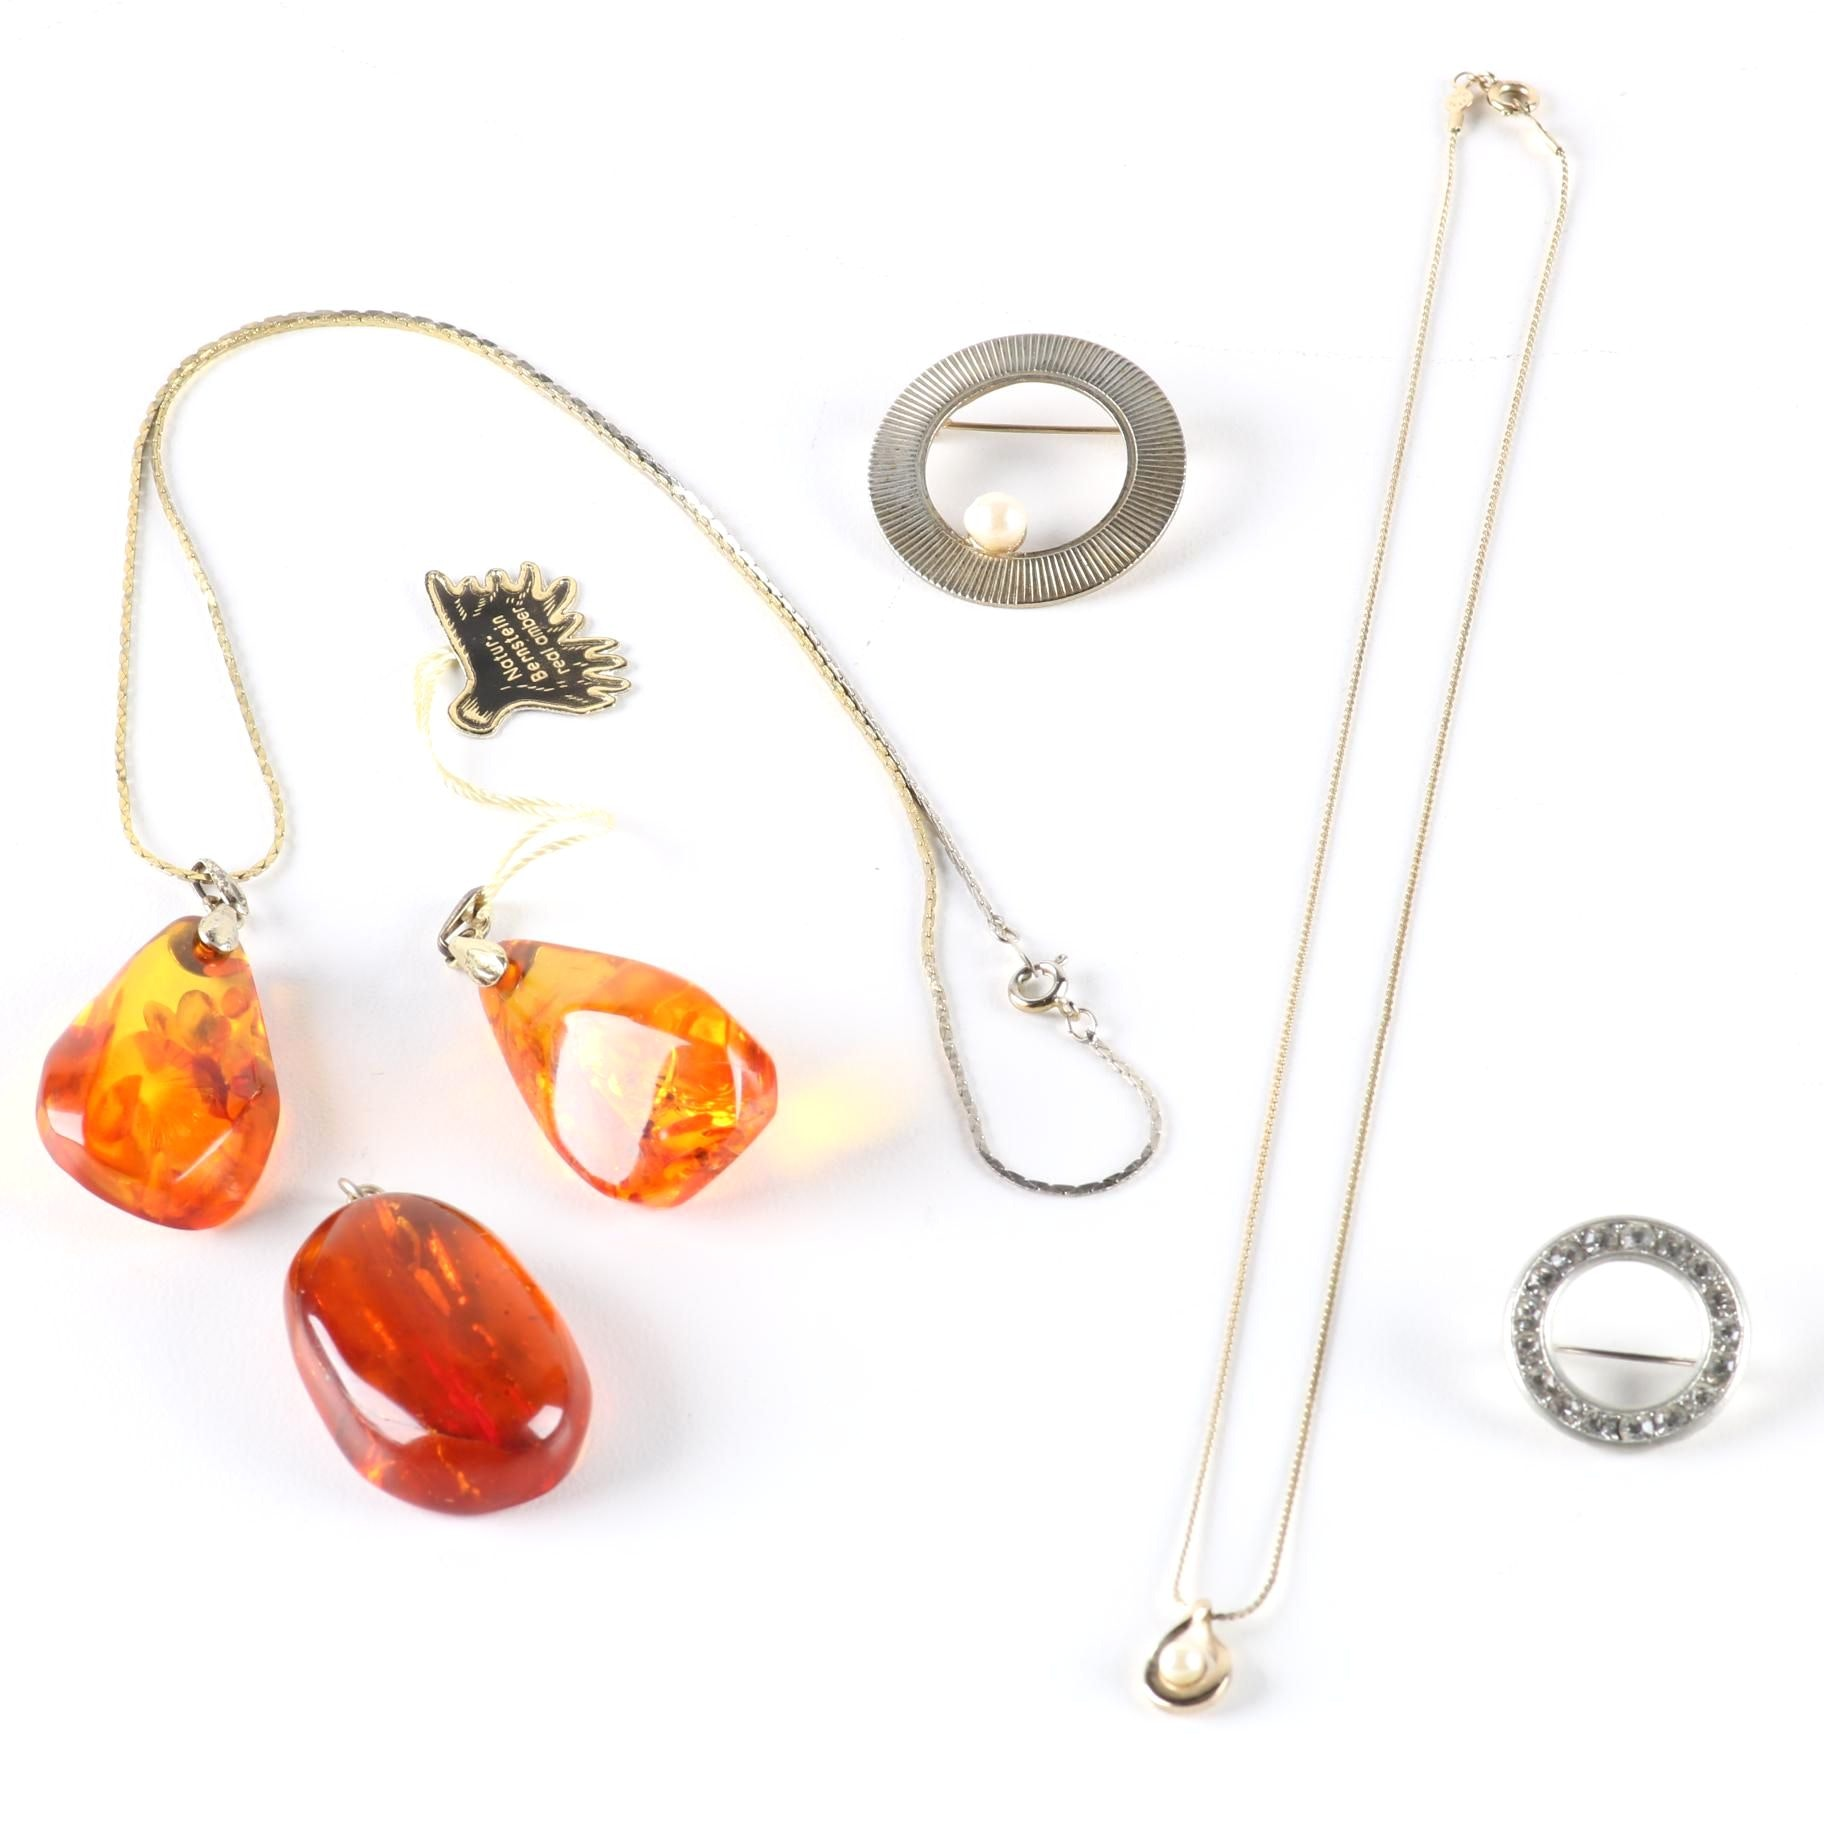 Pearl and Amber Jewelry